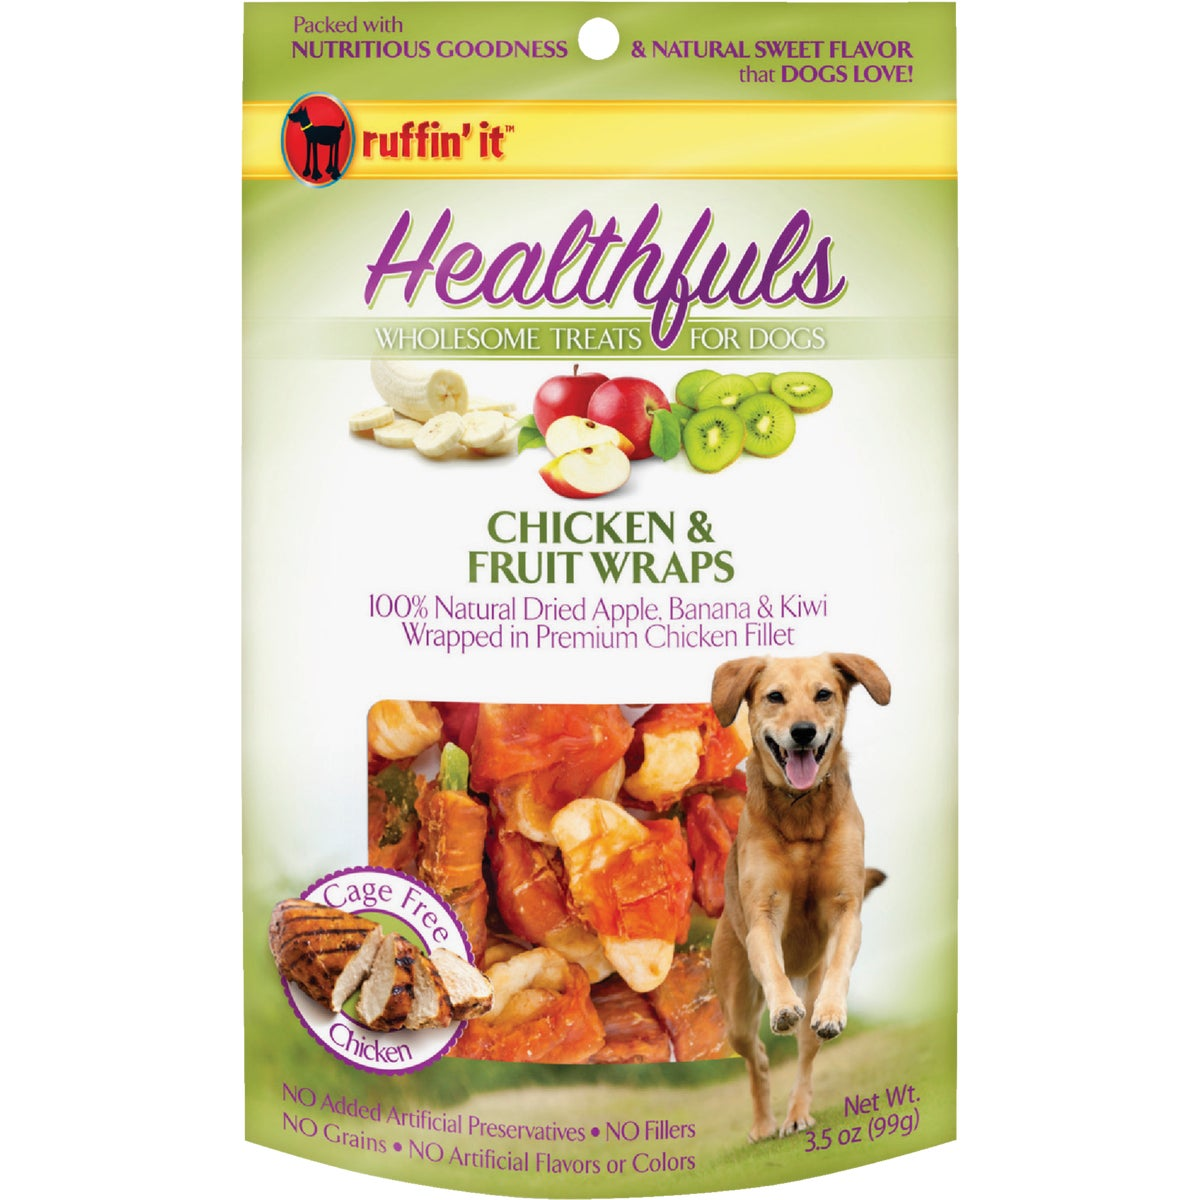 3.5OZ CHKN/FRUT DOG WRAP - 08302 by Westminster Pet